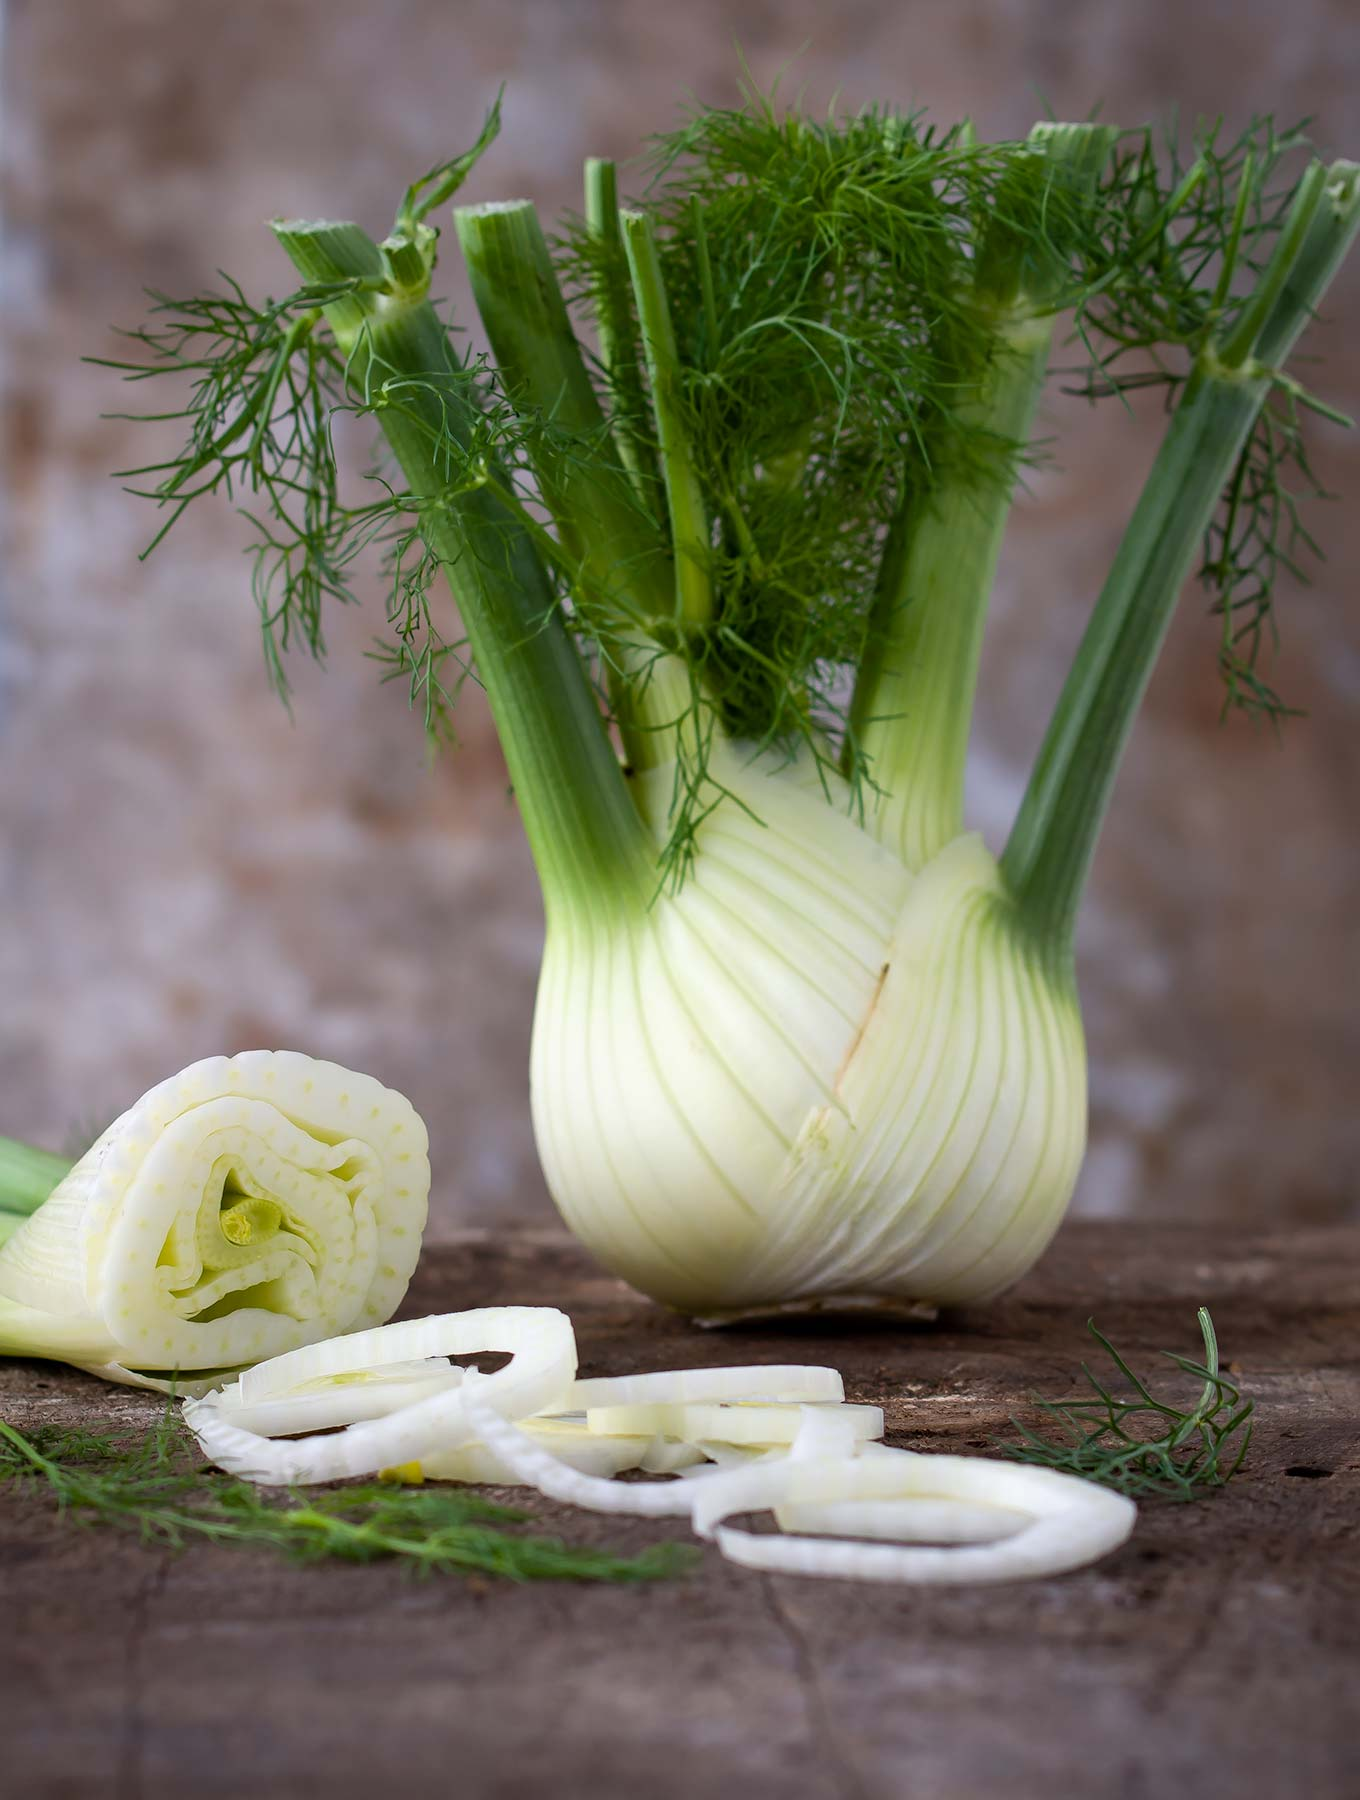 Fennel bulb with cut fennel on a wooden surface